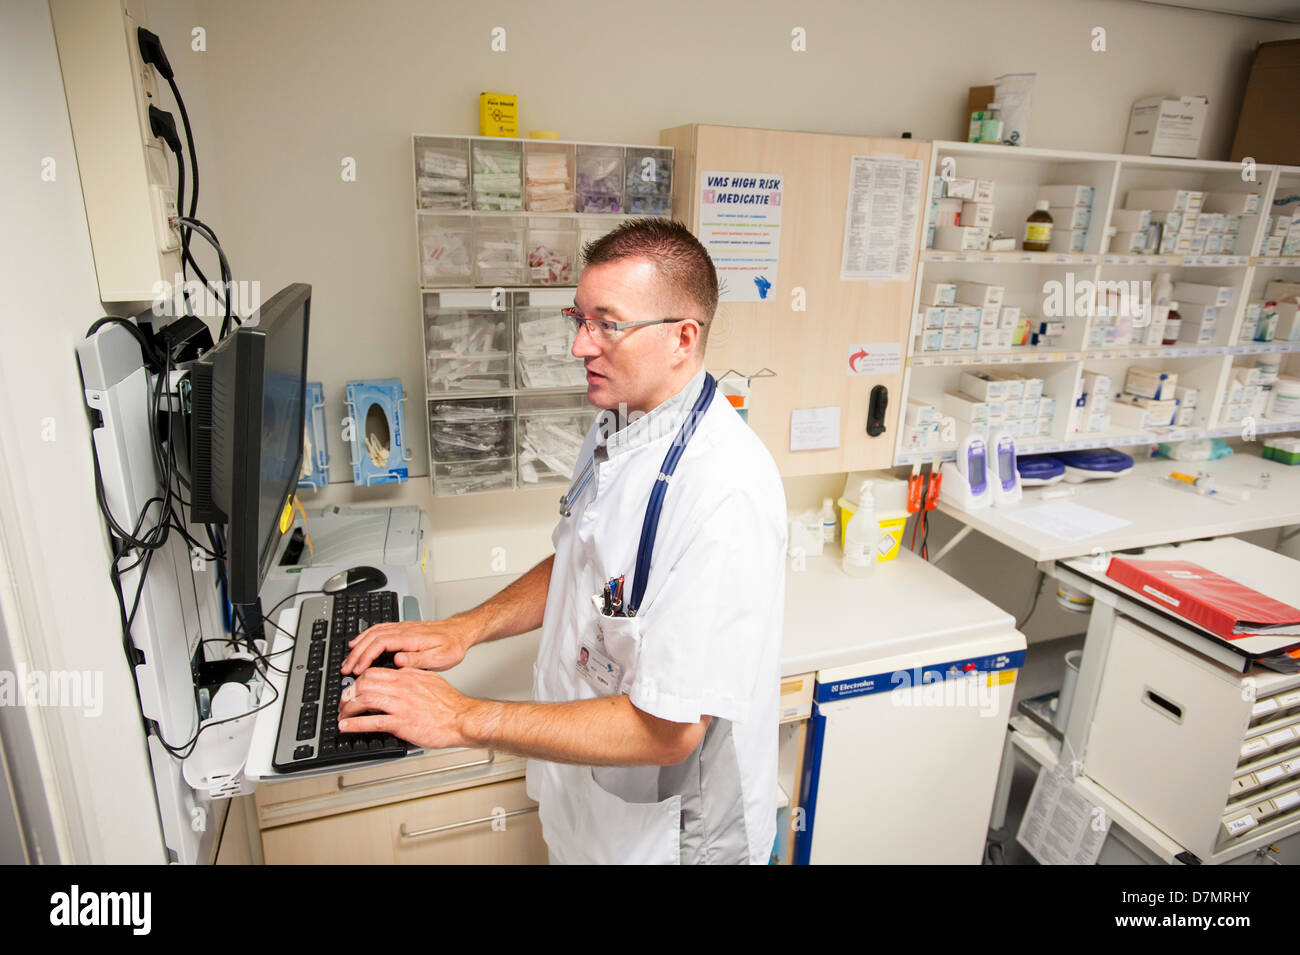 Nurse accessing drug records - Stock Image